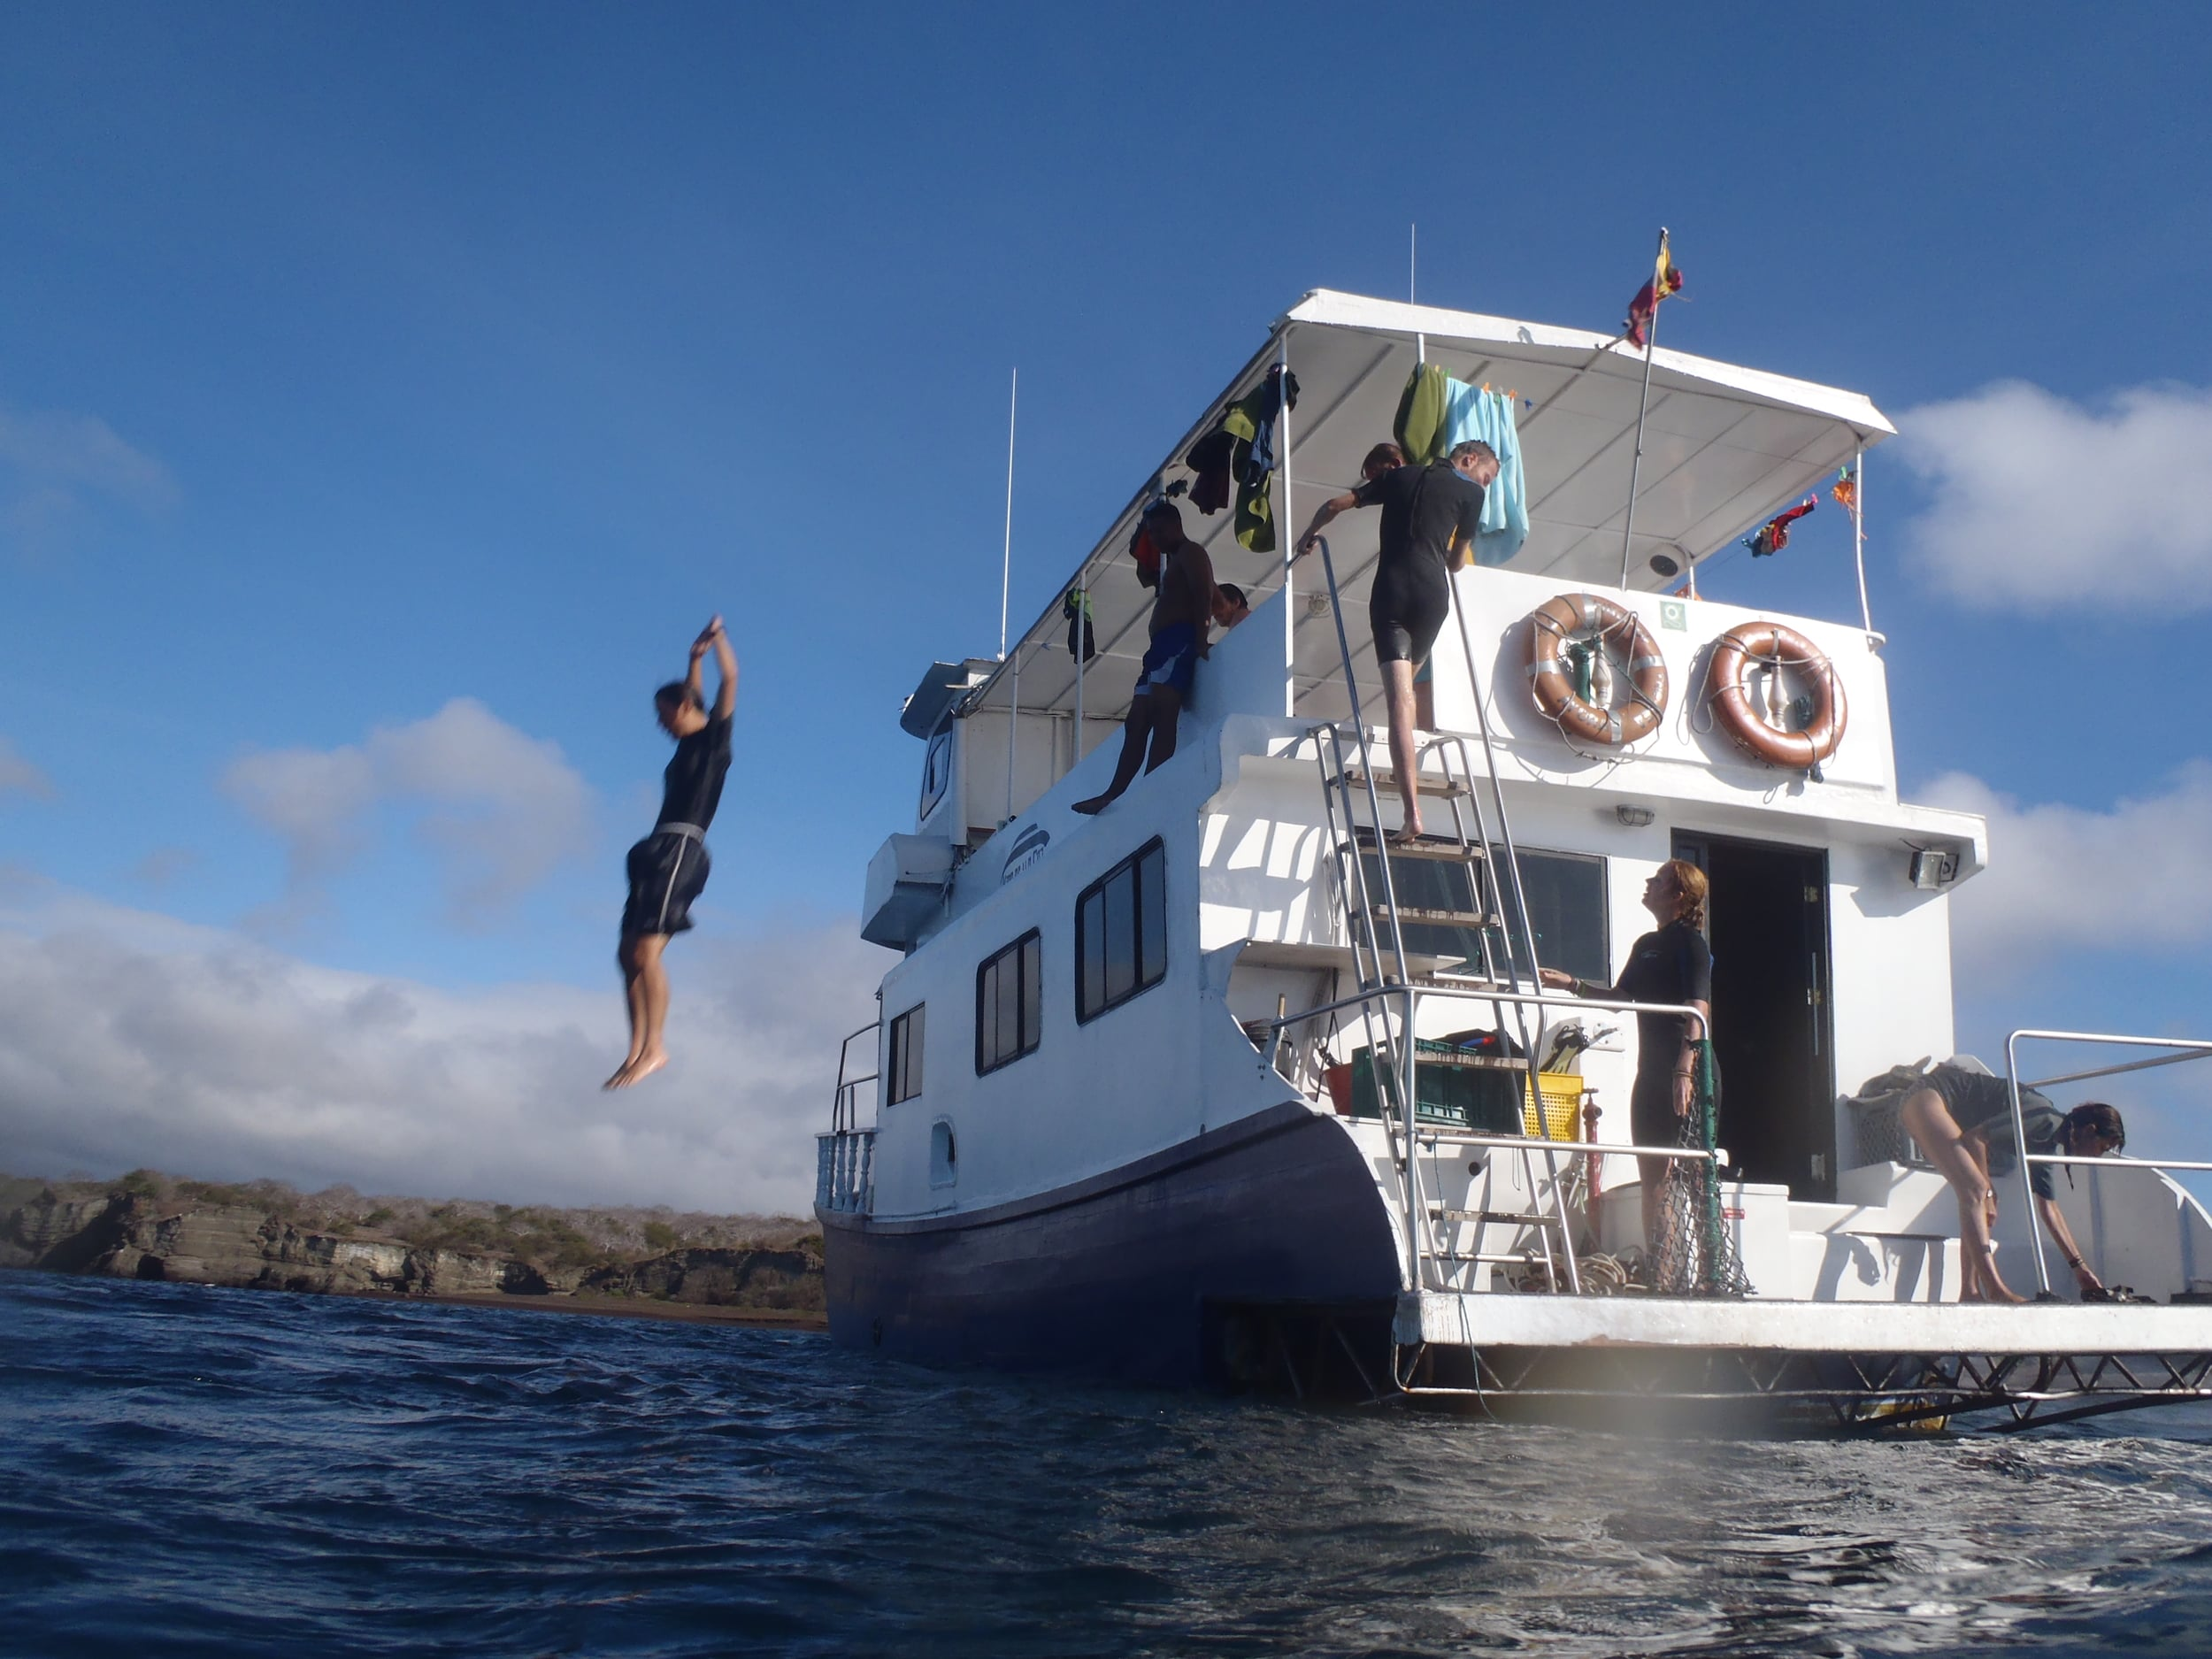 Nia jumps from our boat, the King of the Sea.